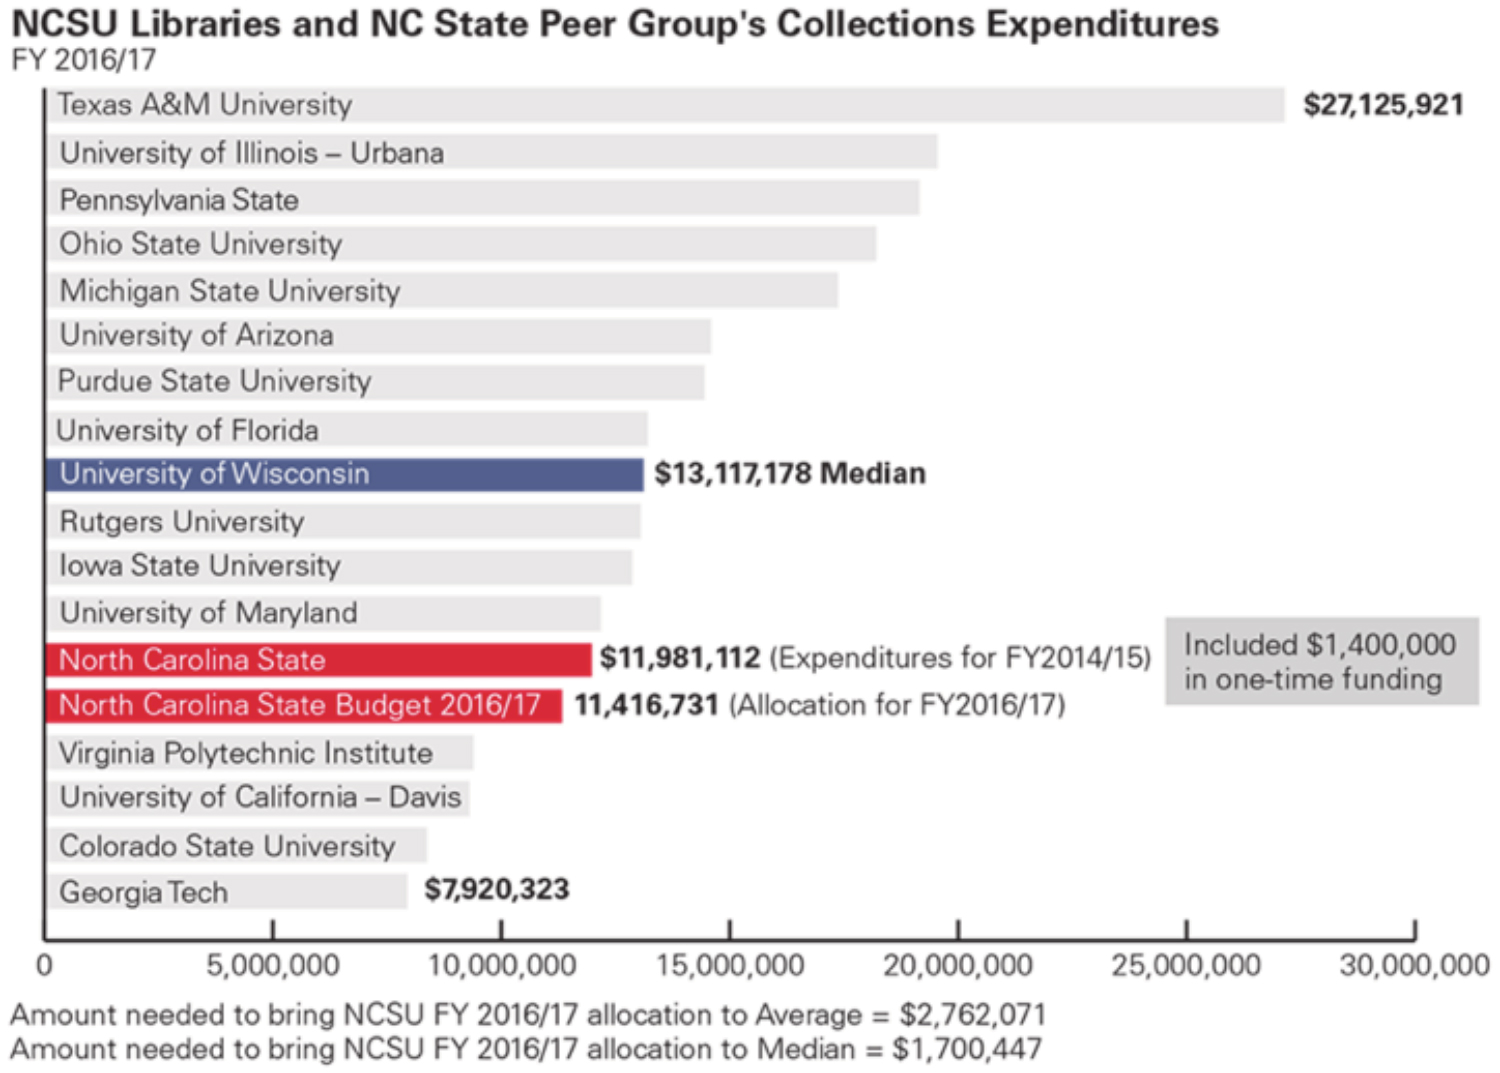 NCSU Libraries and NC State Peer Group's Collections Expenditures